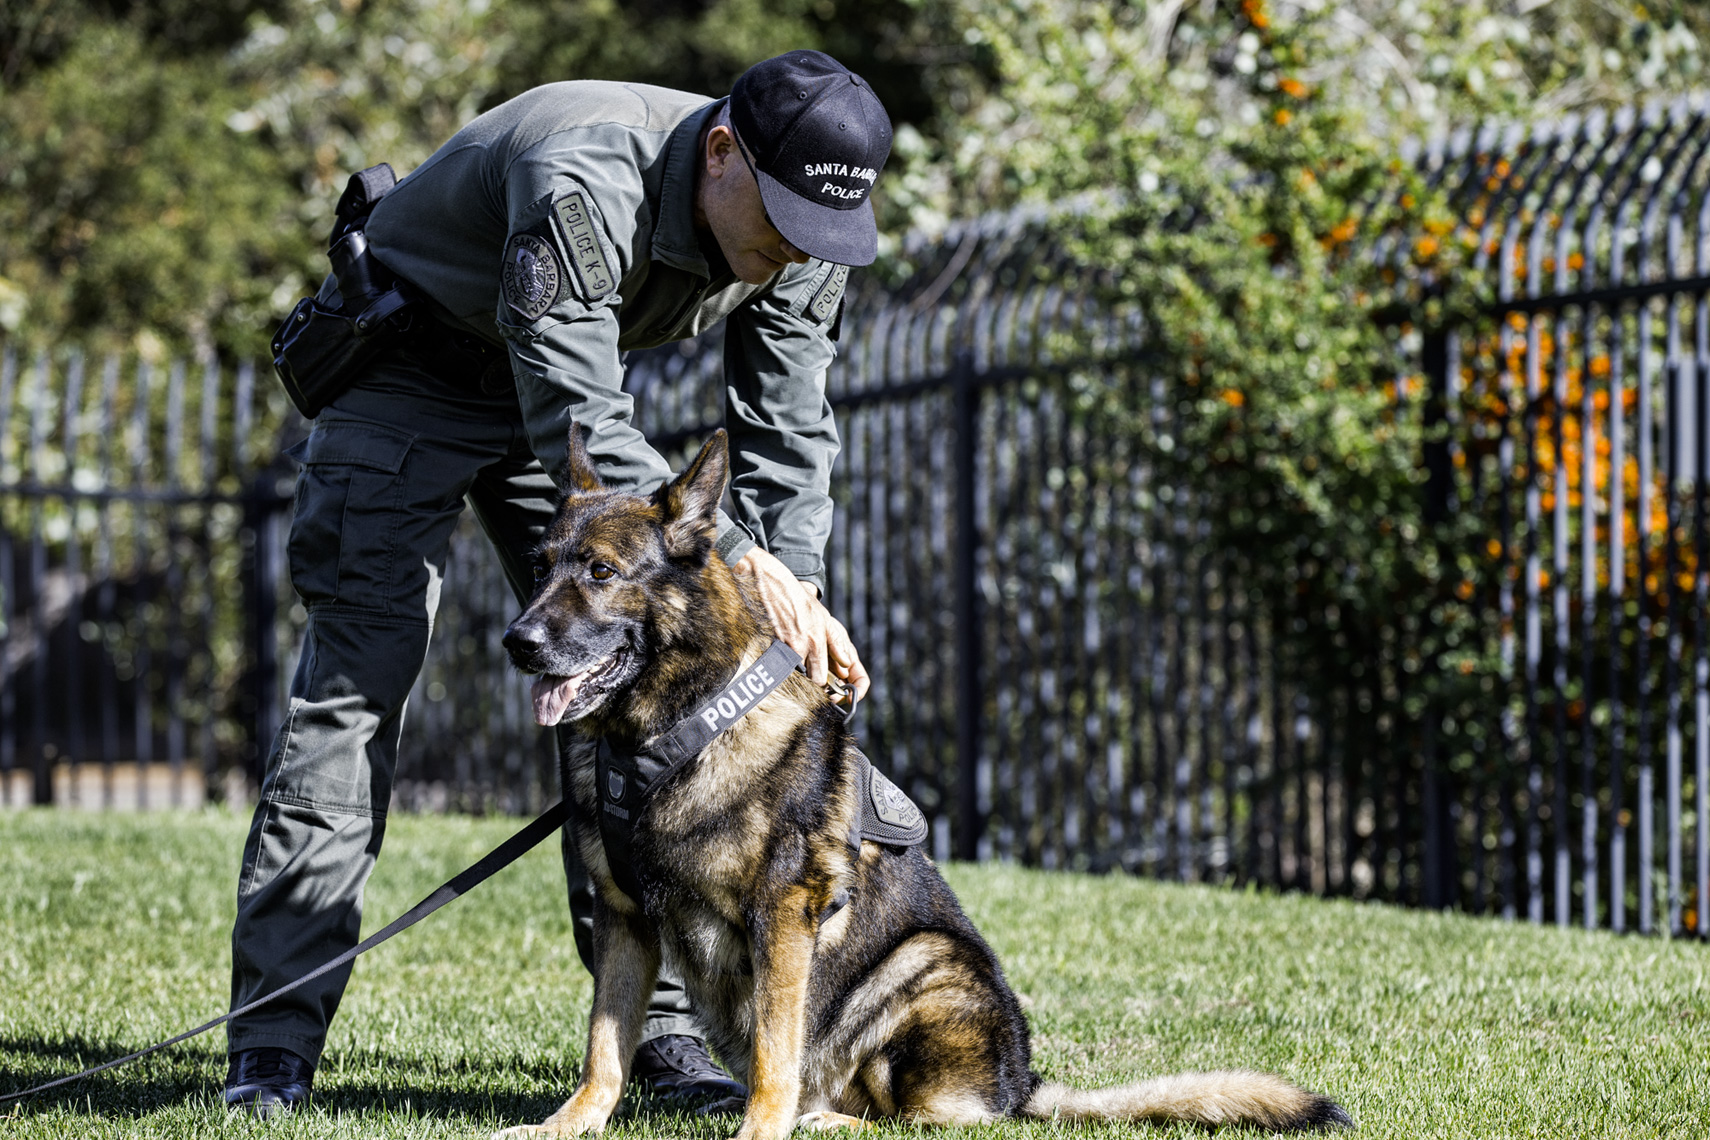 Los Angeles Dog Photography, Michael Brian, Santa Barbara Police K-9 Brag prepares for training with officer David Hedges